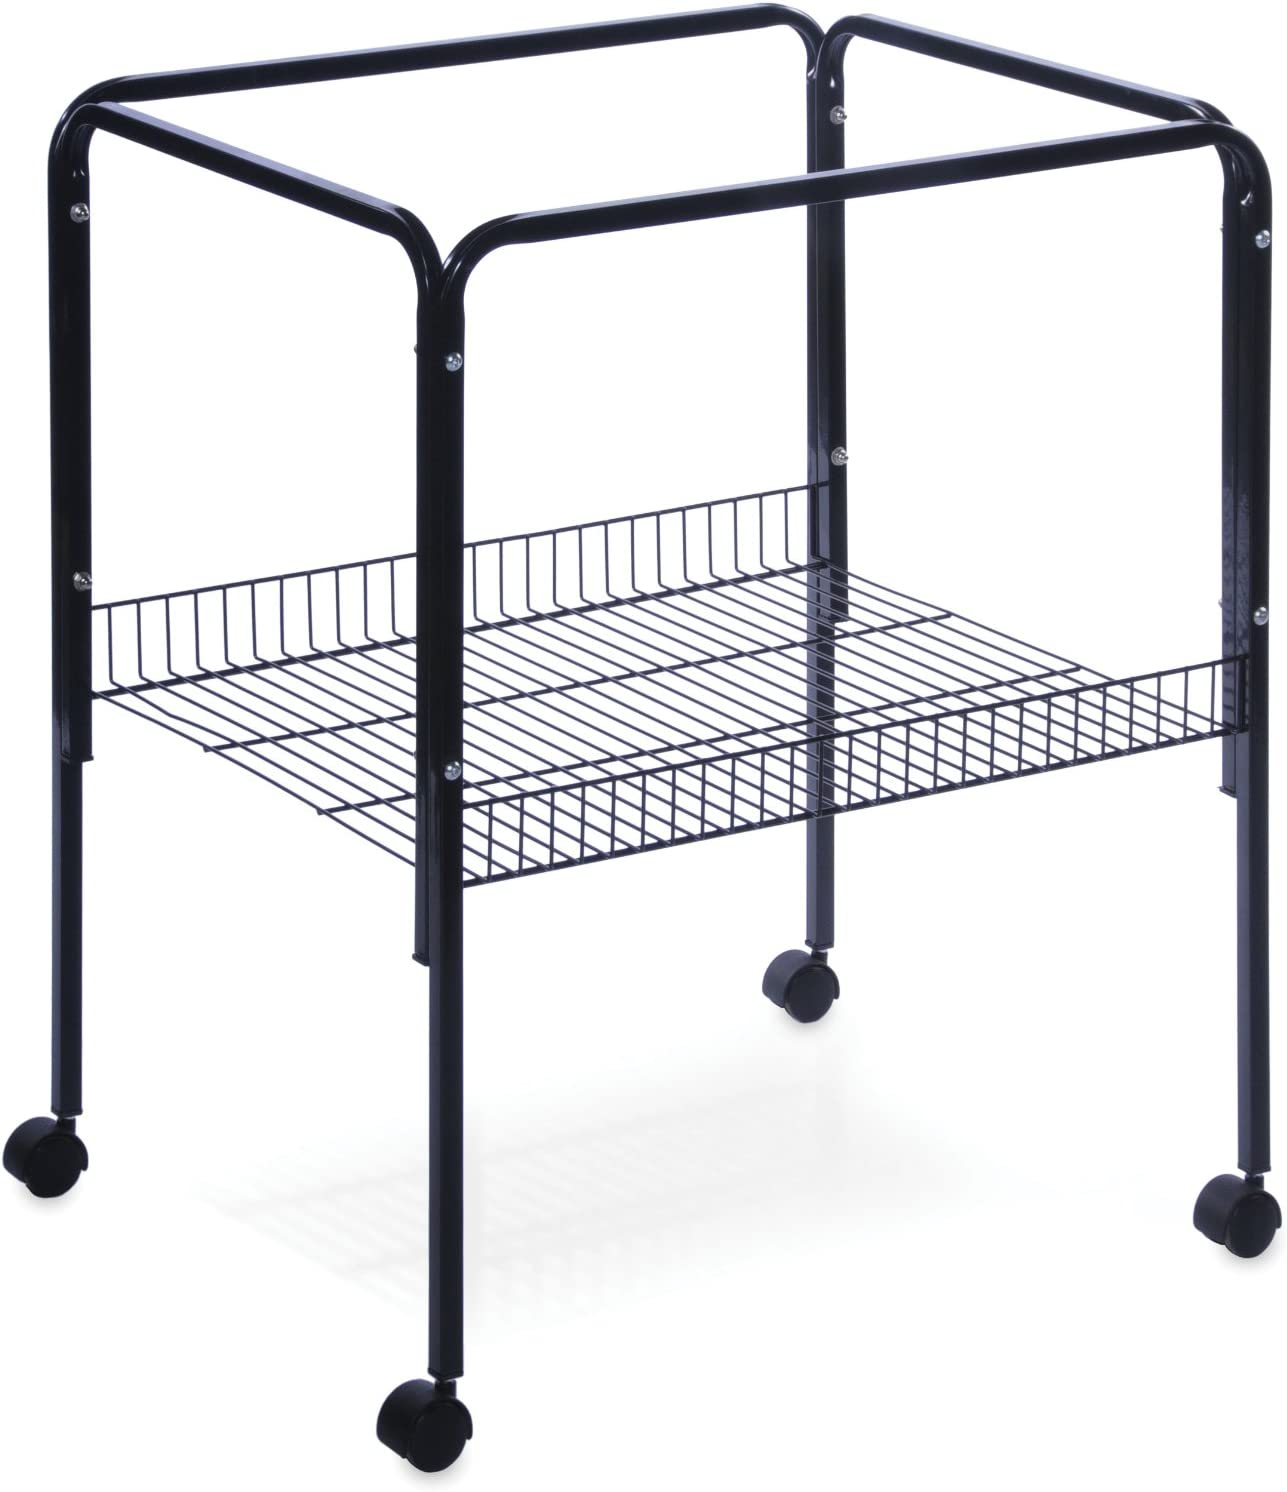 Prevue Pet Products Rolling Stand with Shelf, Black : Birdcage Stands : Pet Supplies